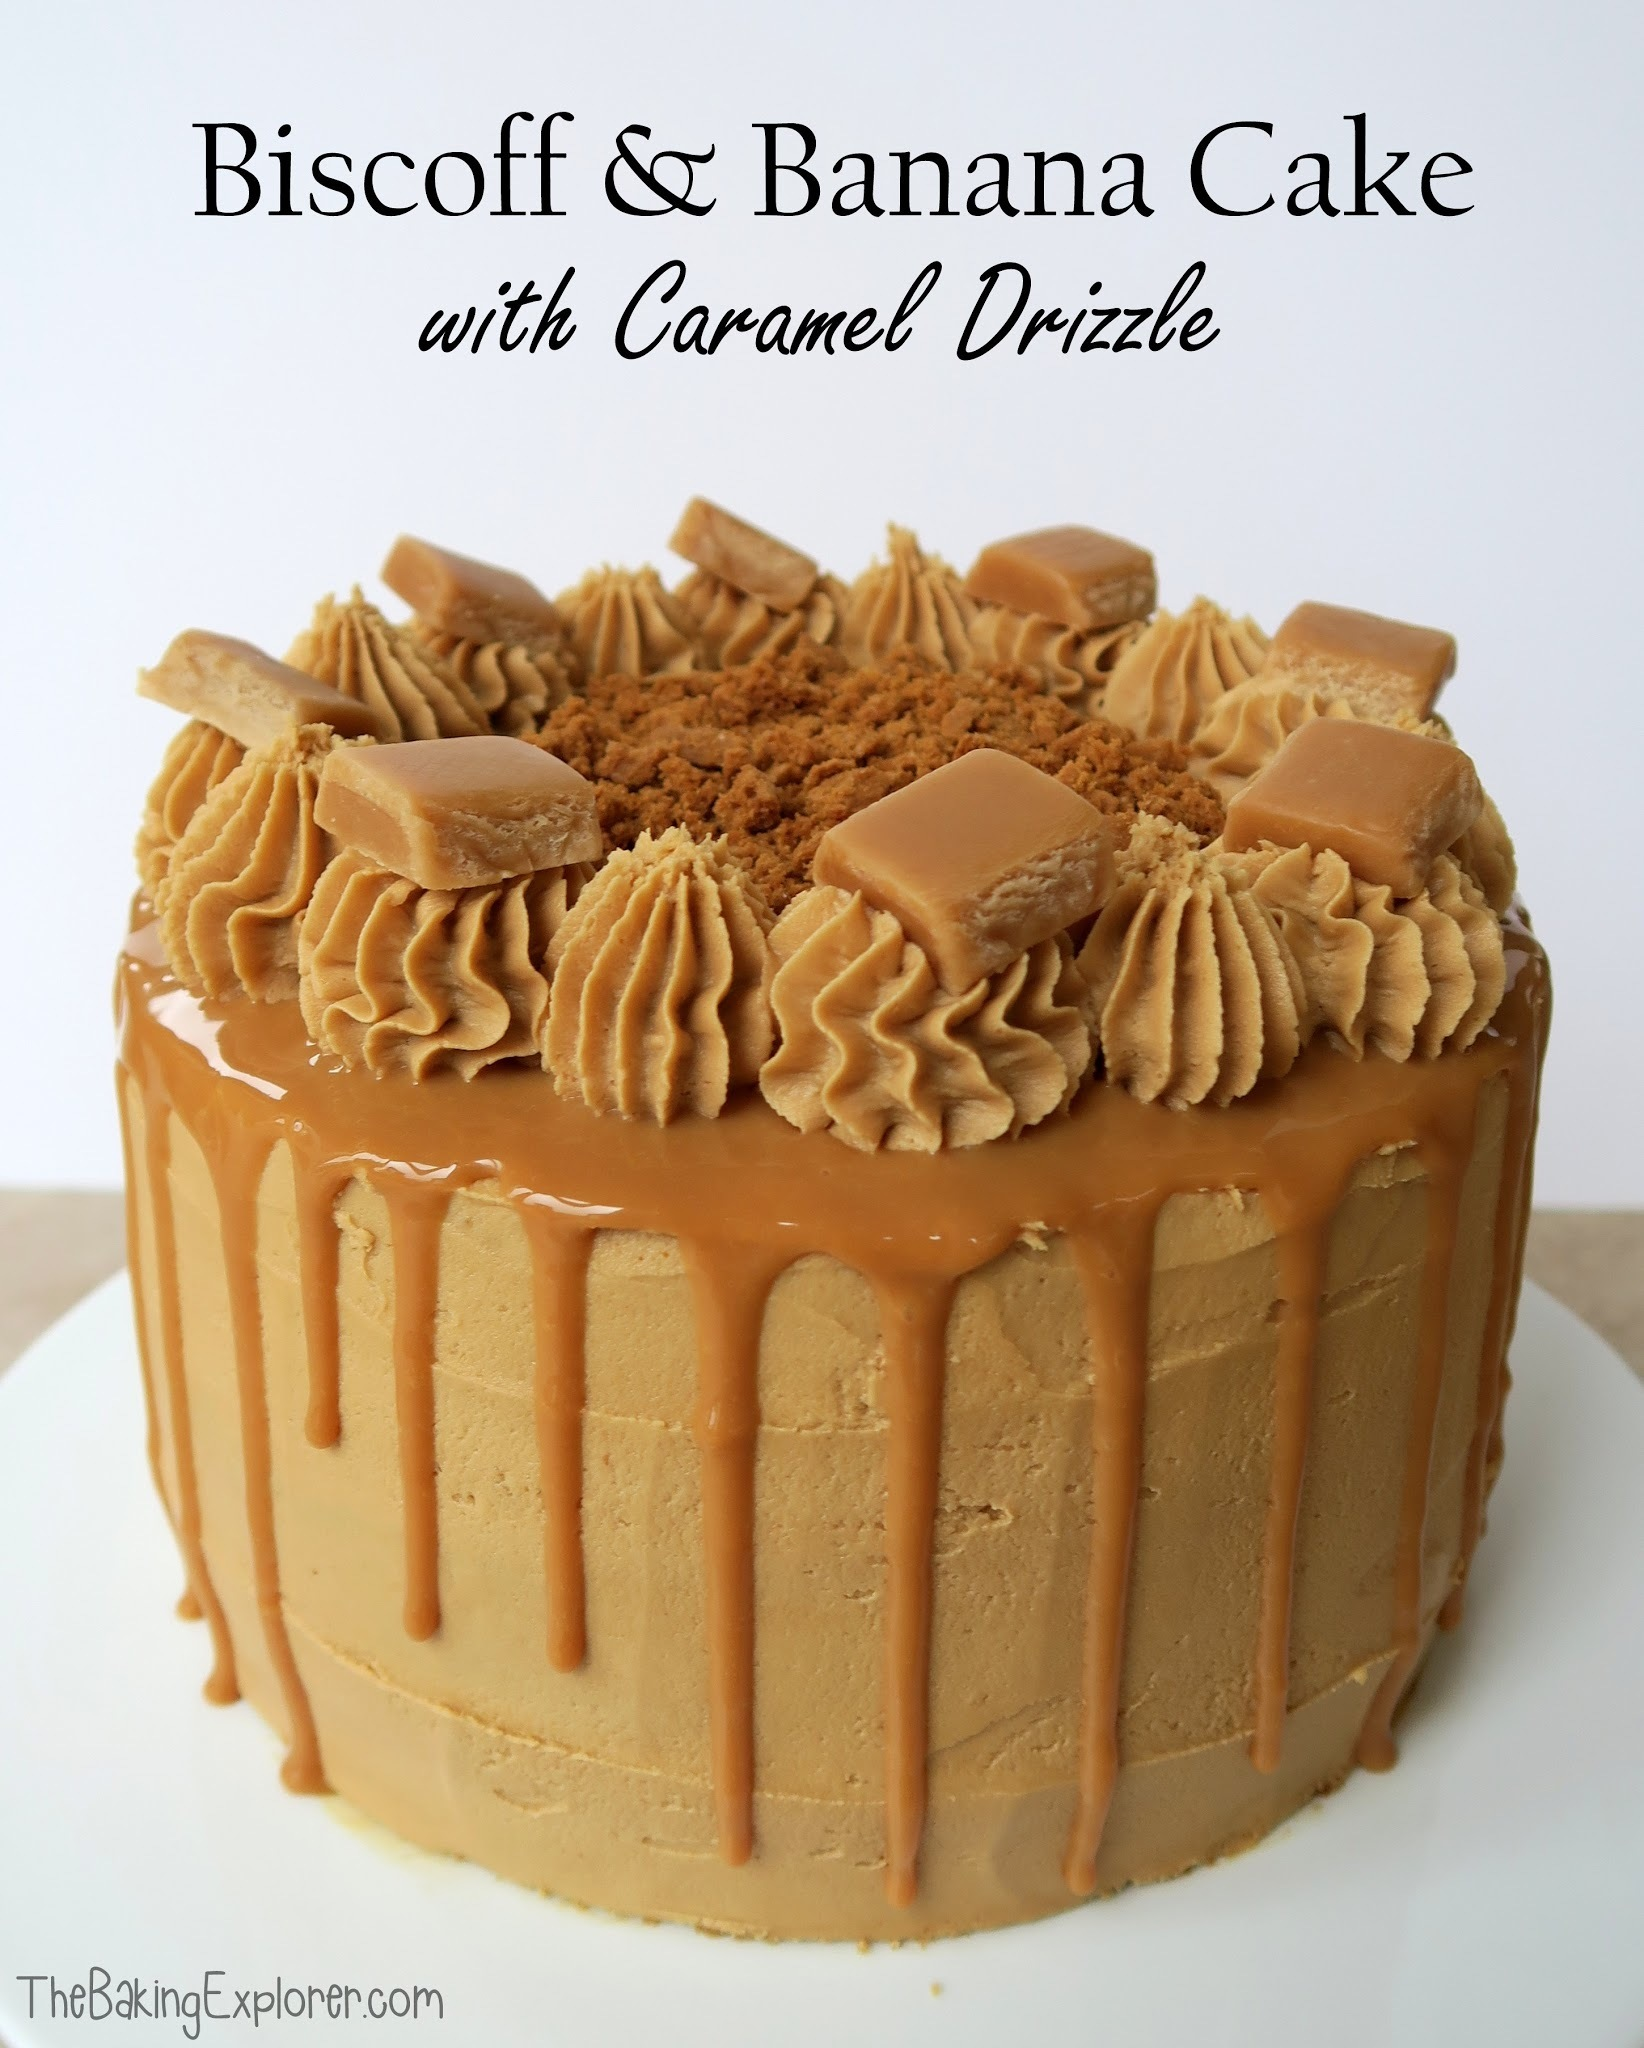 Biscoff & Banana Cake with Caramel Drizzle